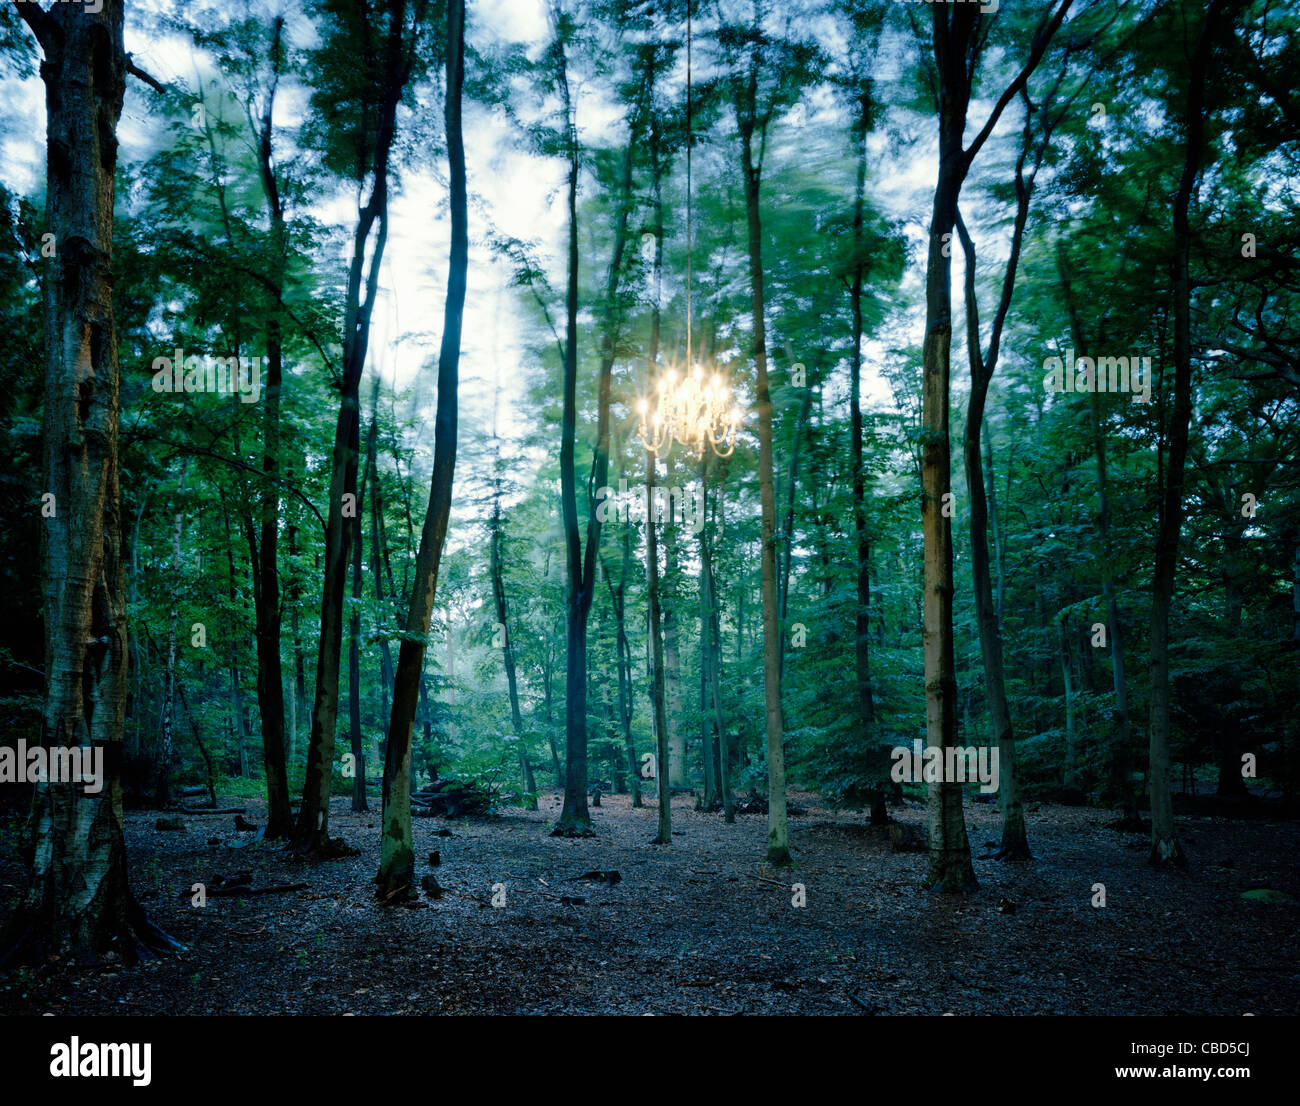 Lights hanging from tree in forest - Stock Image